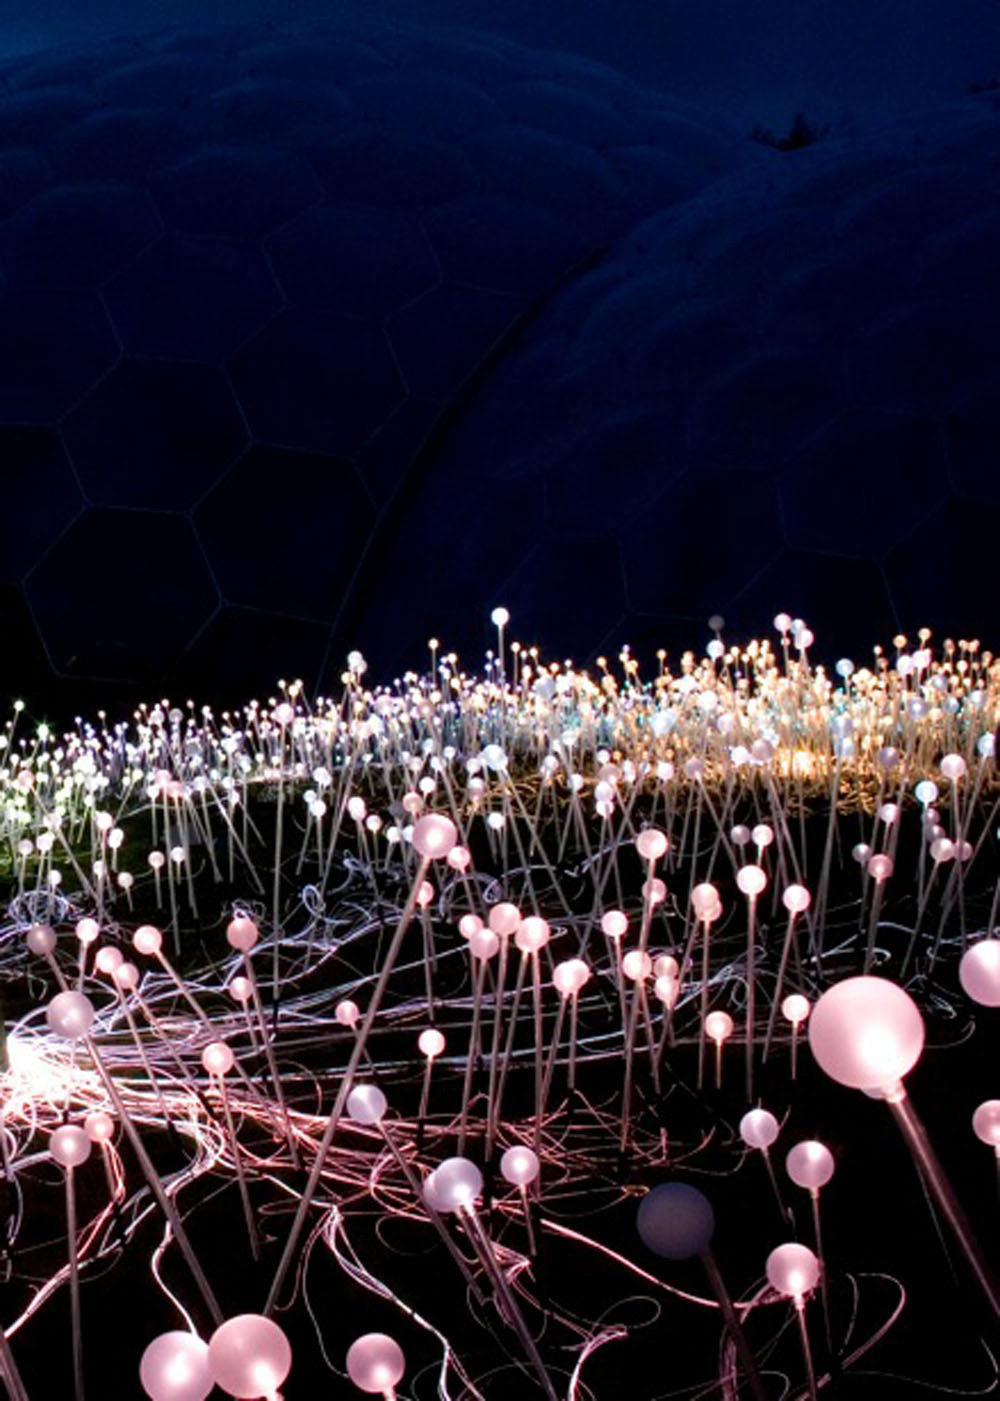 Bruce Munro - Field of Light, 2003  Hello enchanted.